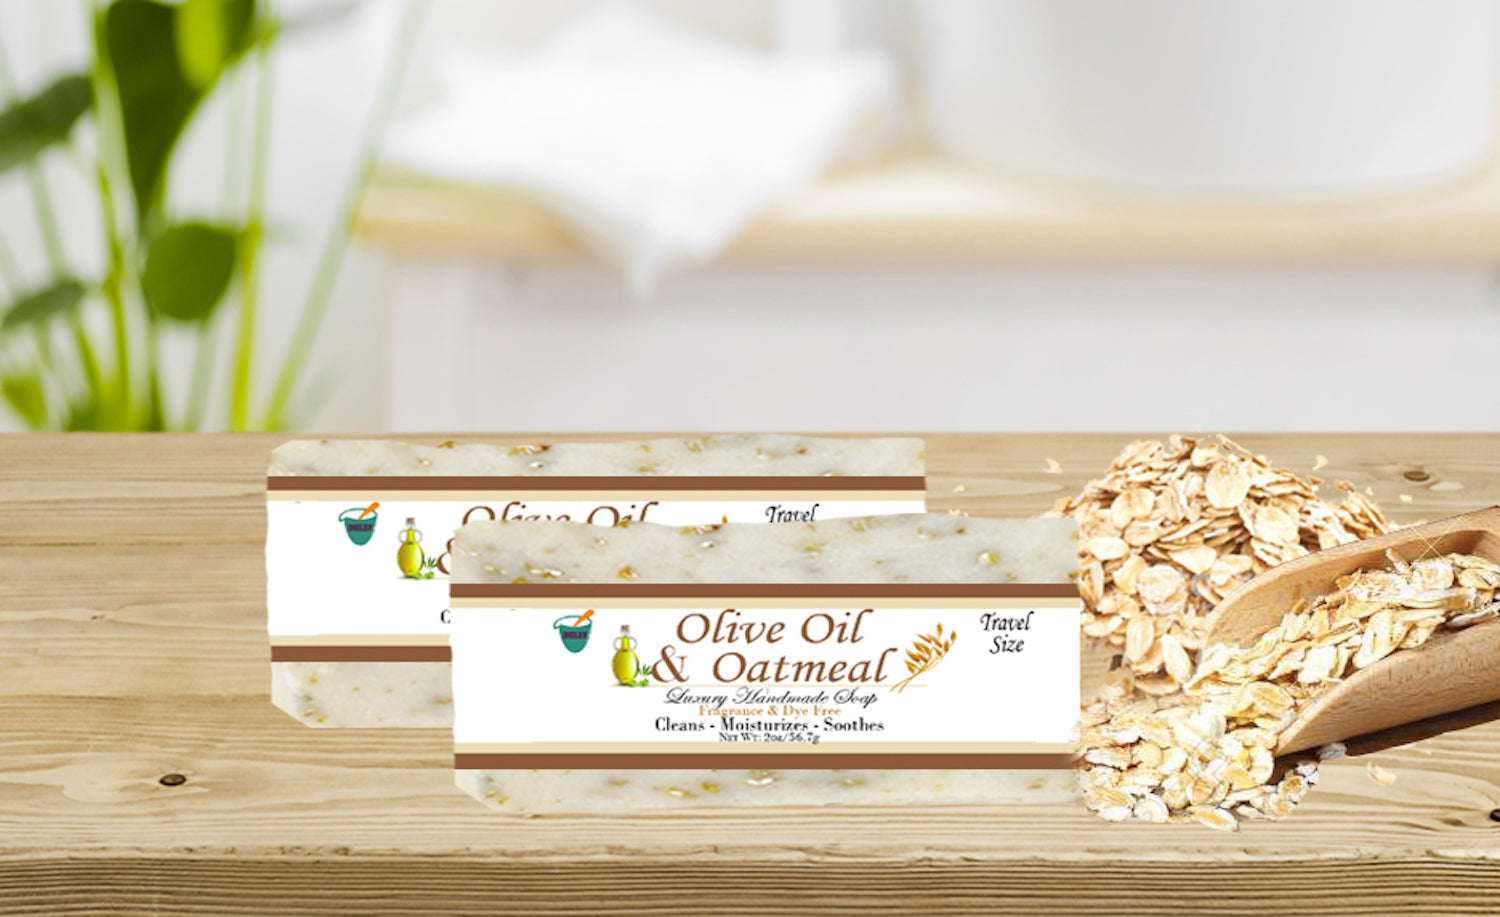 OLIVE OIL & OATMEAL                                                   2oz BAR SOAP